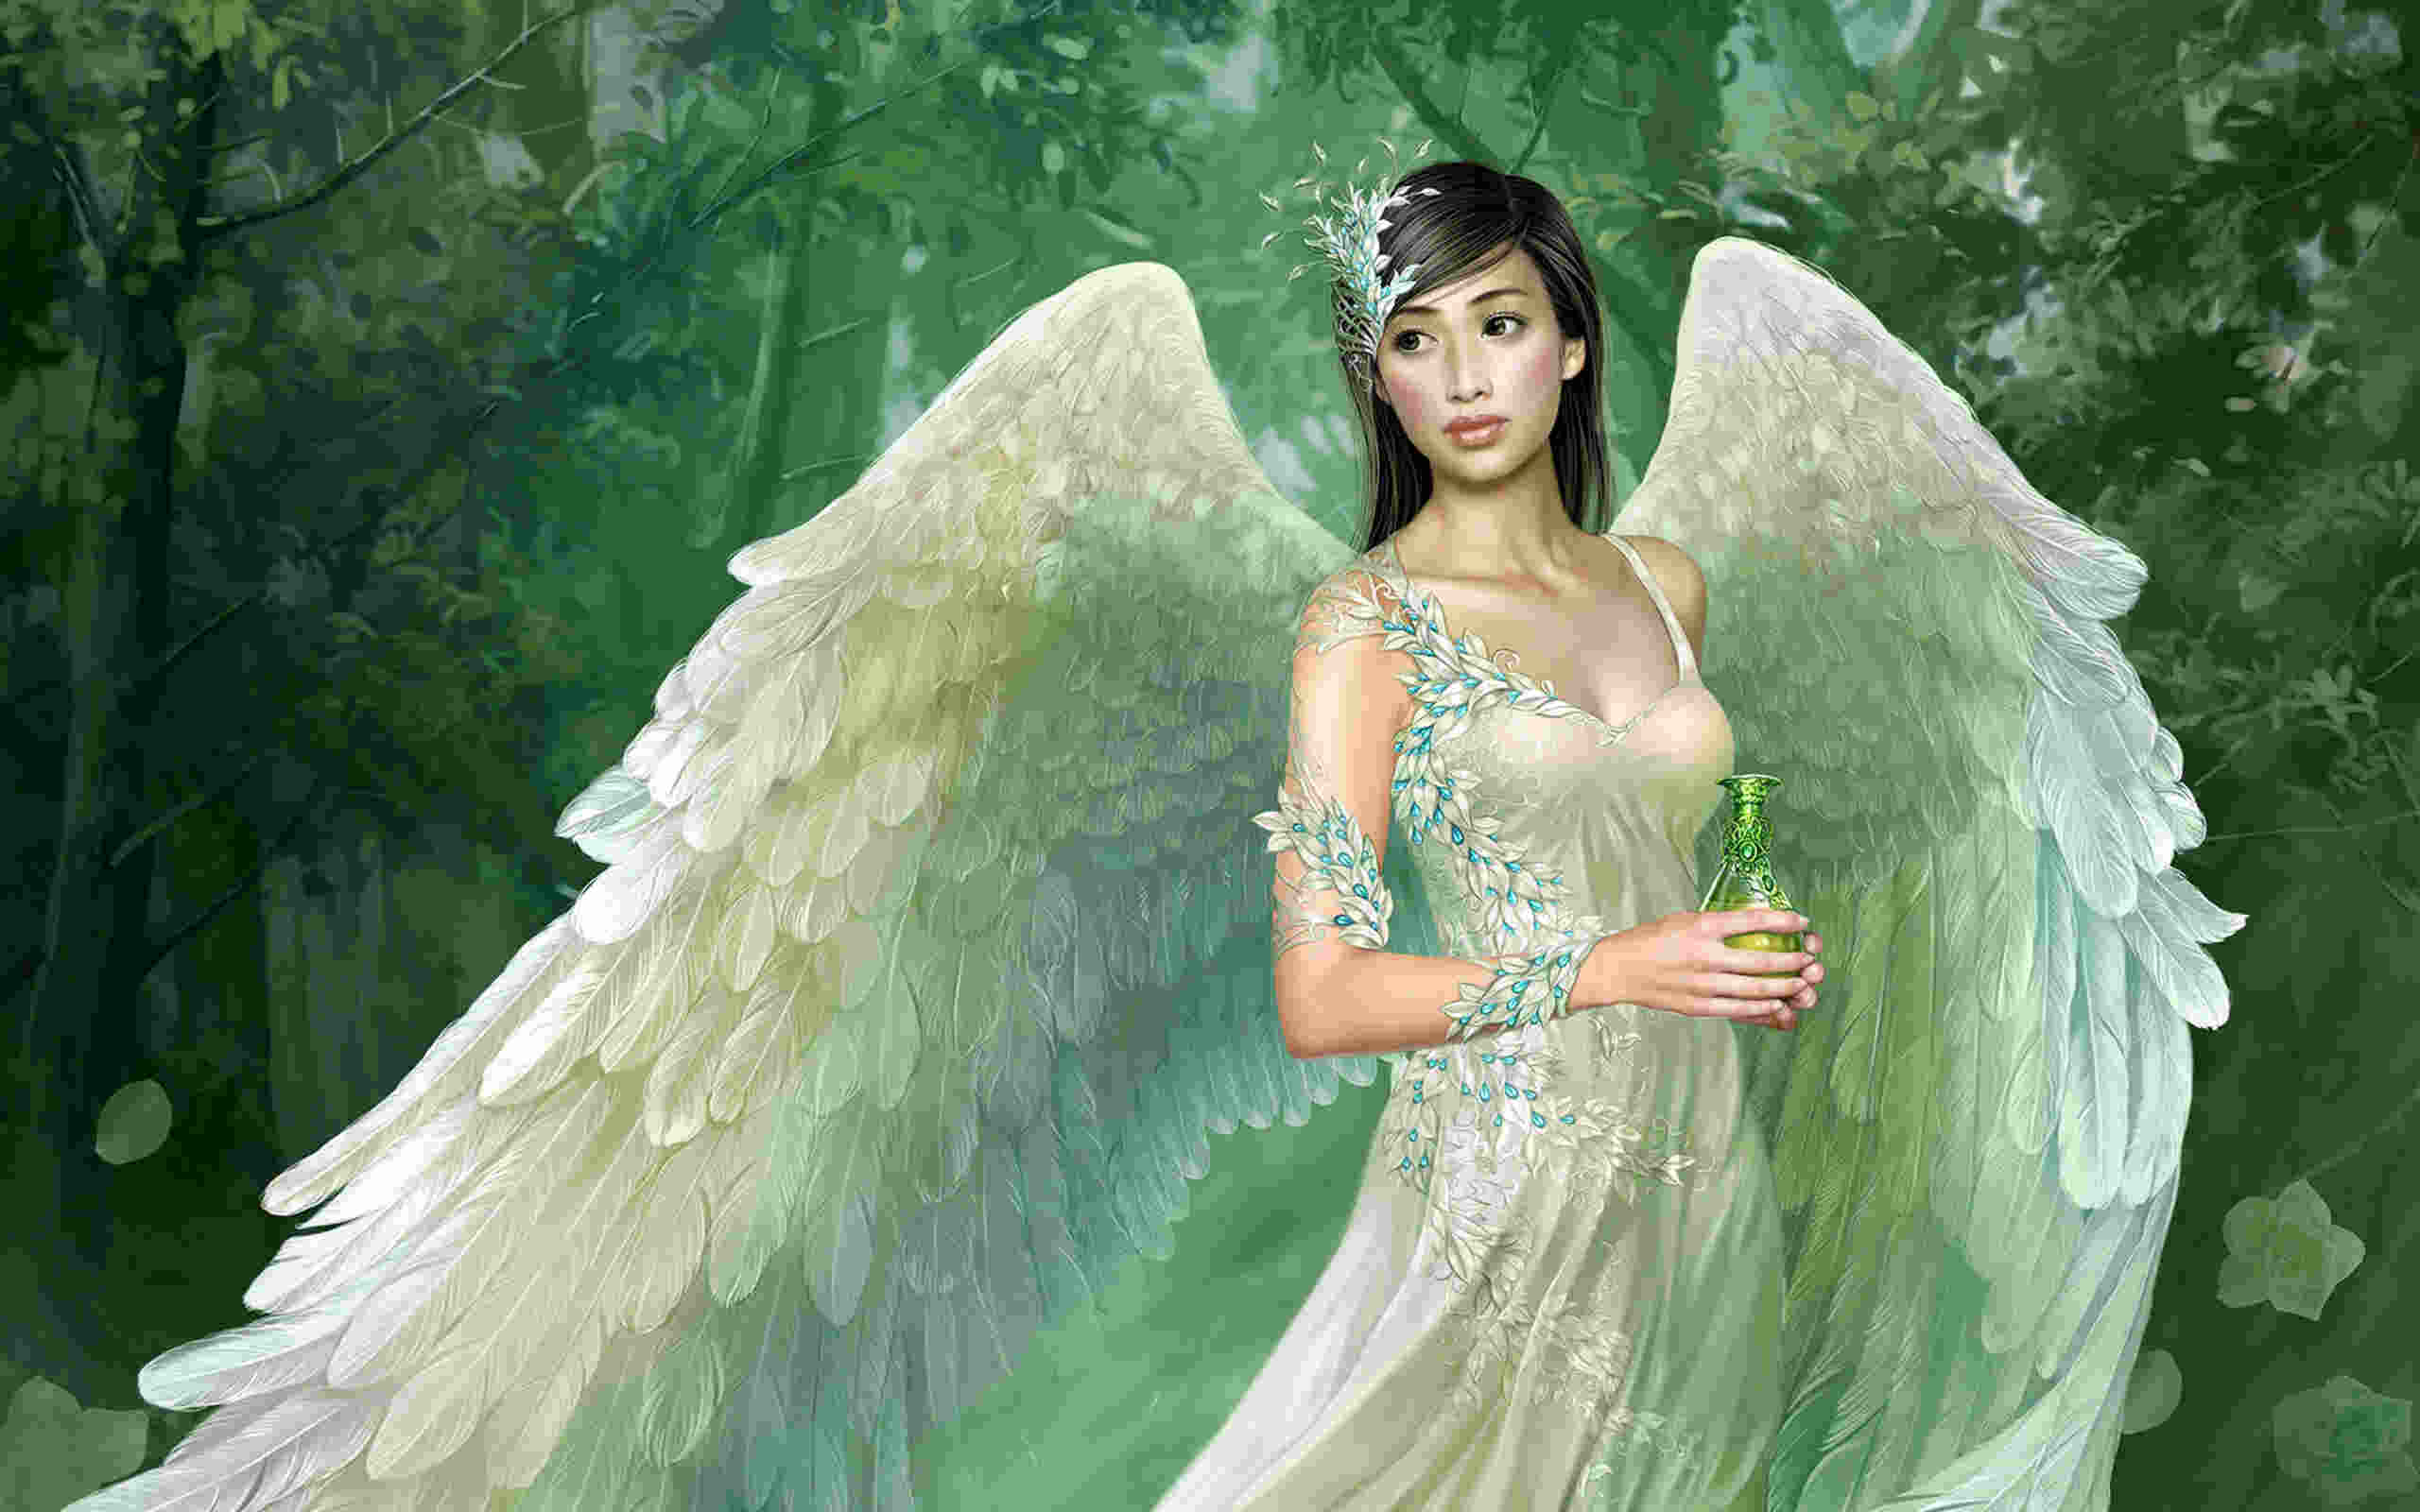 Green Fantasy Angel Wallpaper